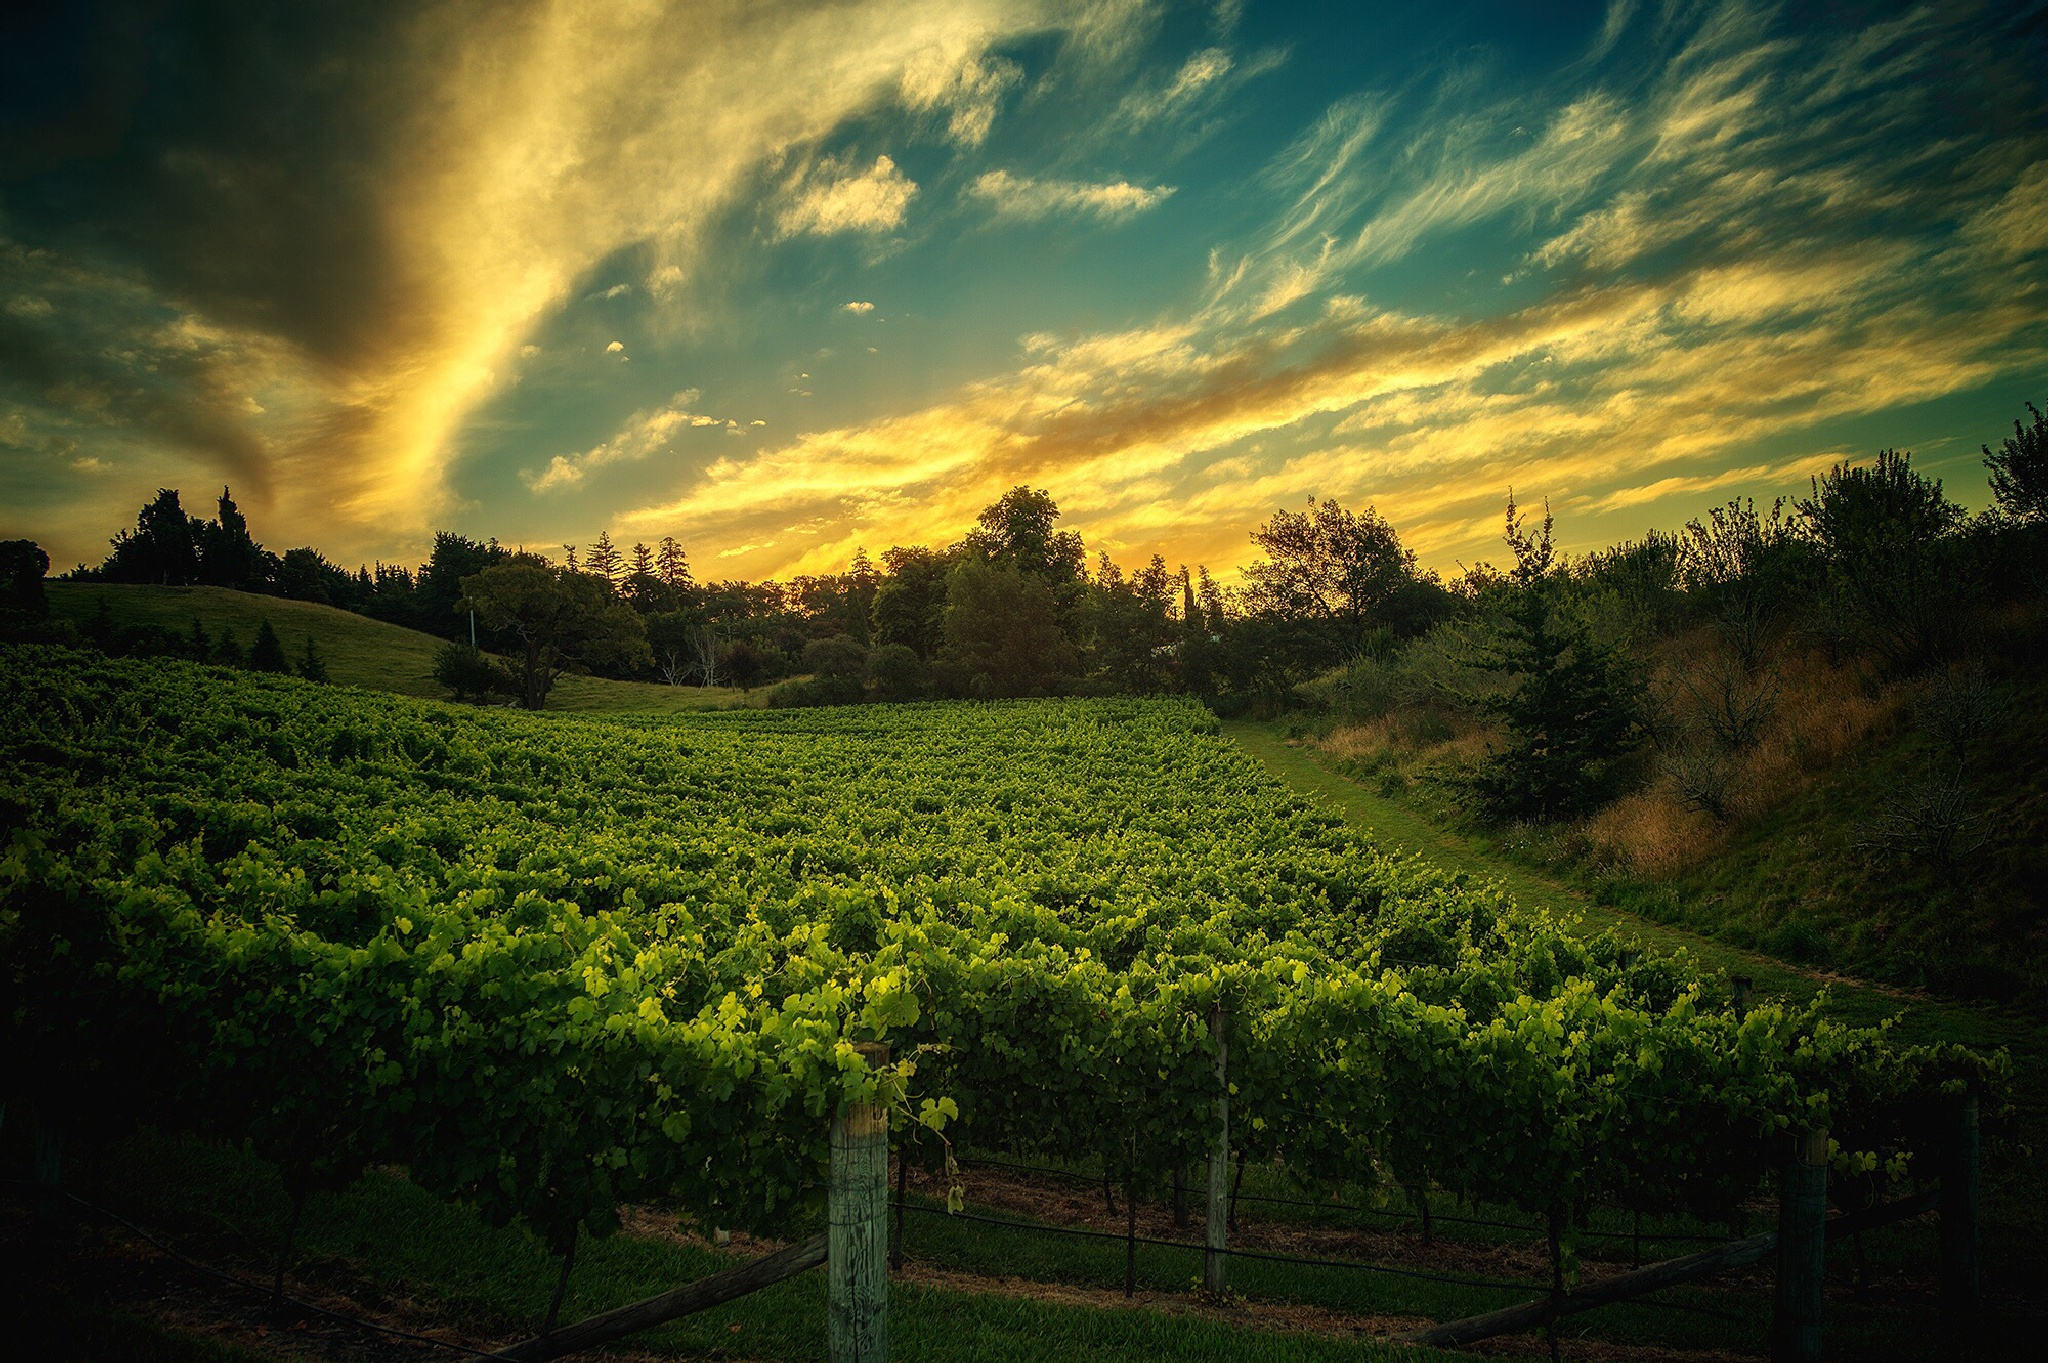 Sunset over the Vineyard by seosphotography